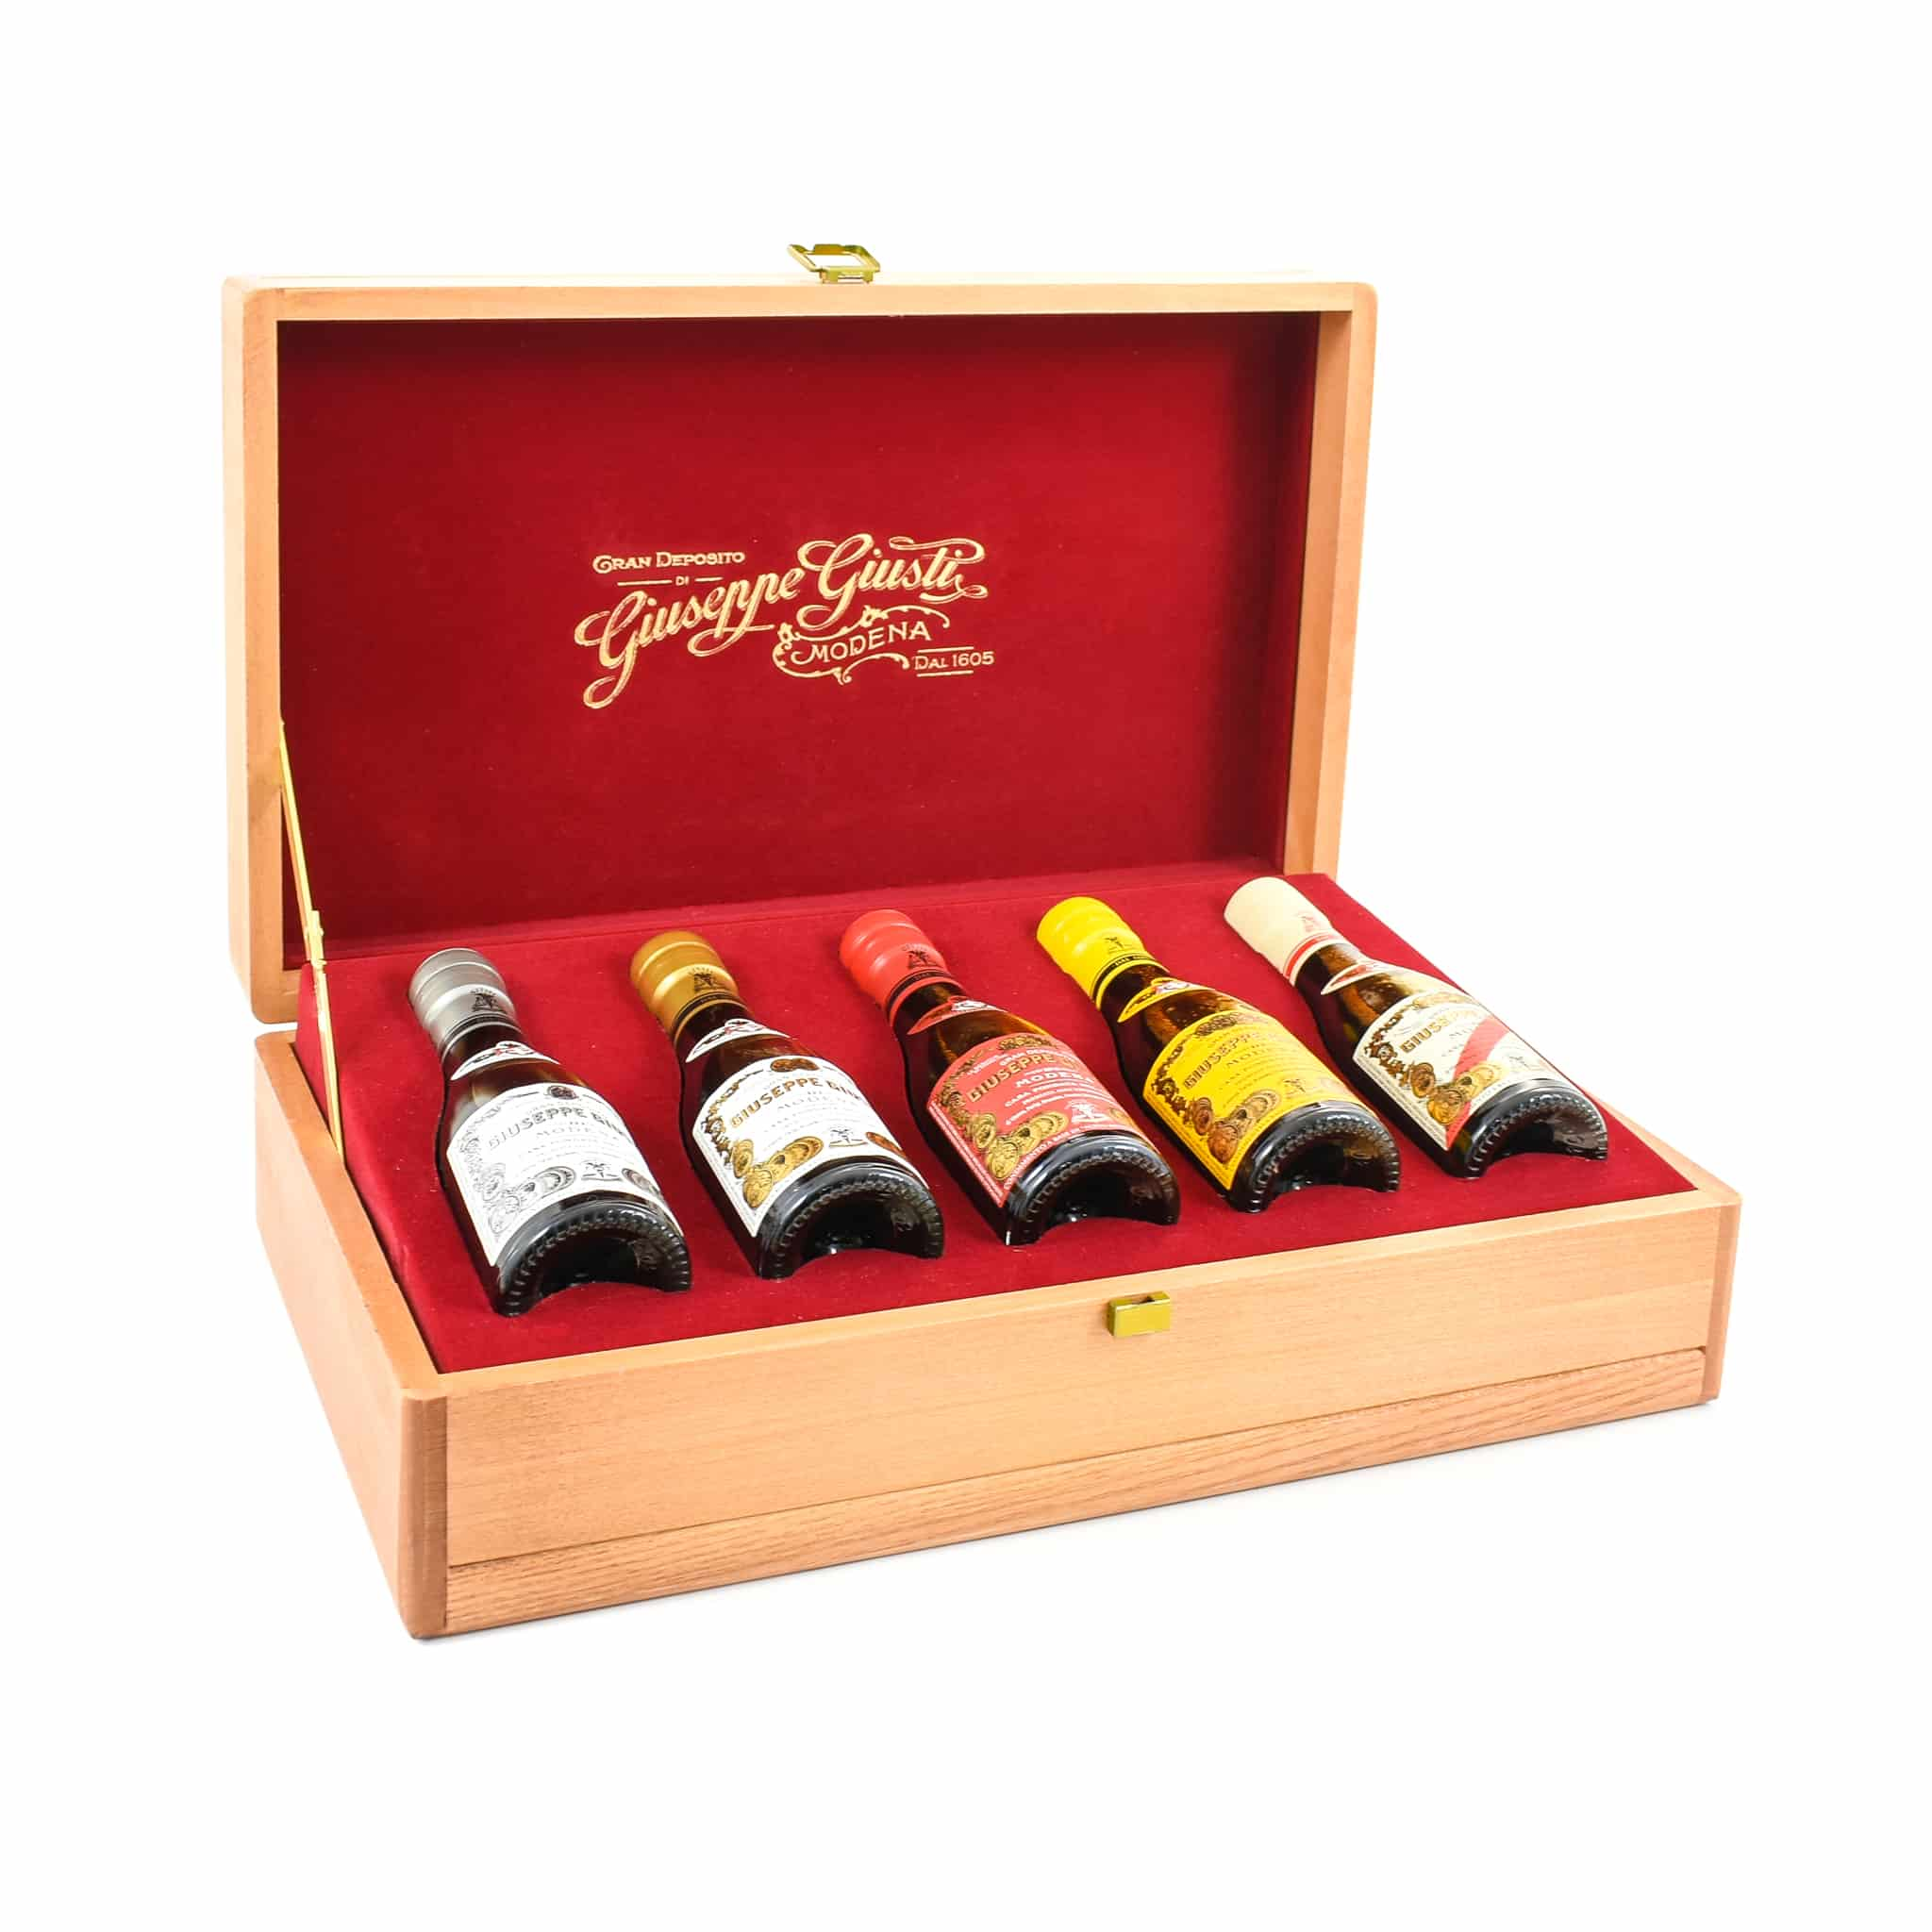 Giuseppe Giusti Balsamic Vinegar Historical Collection in Wooden Casket